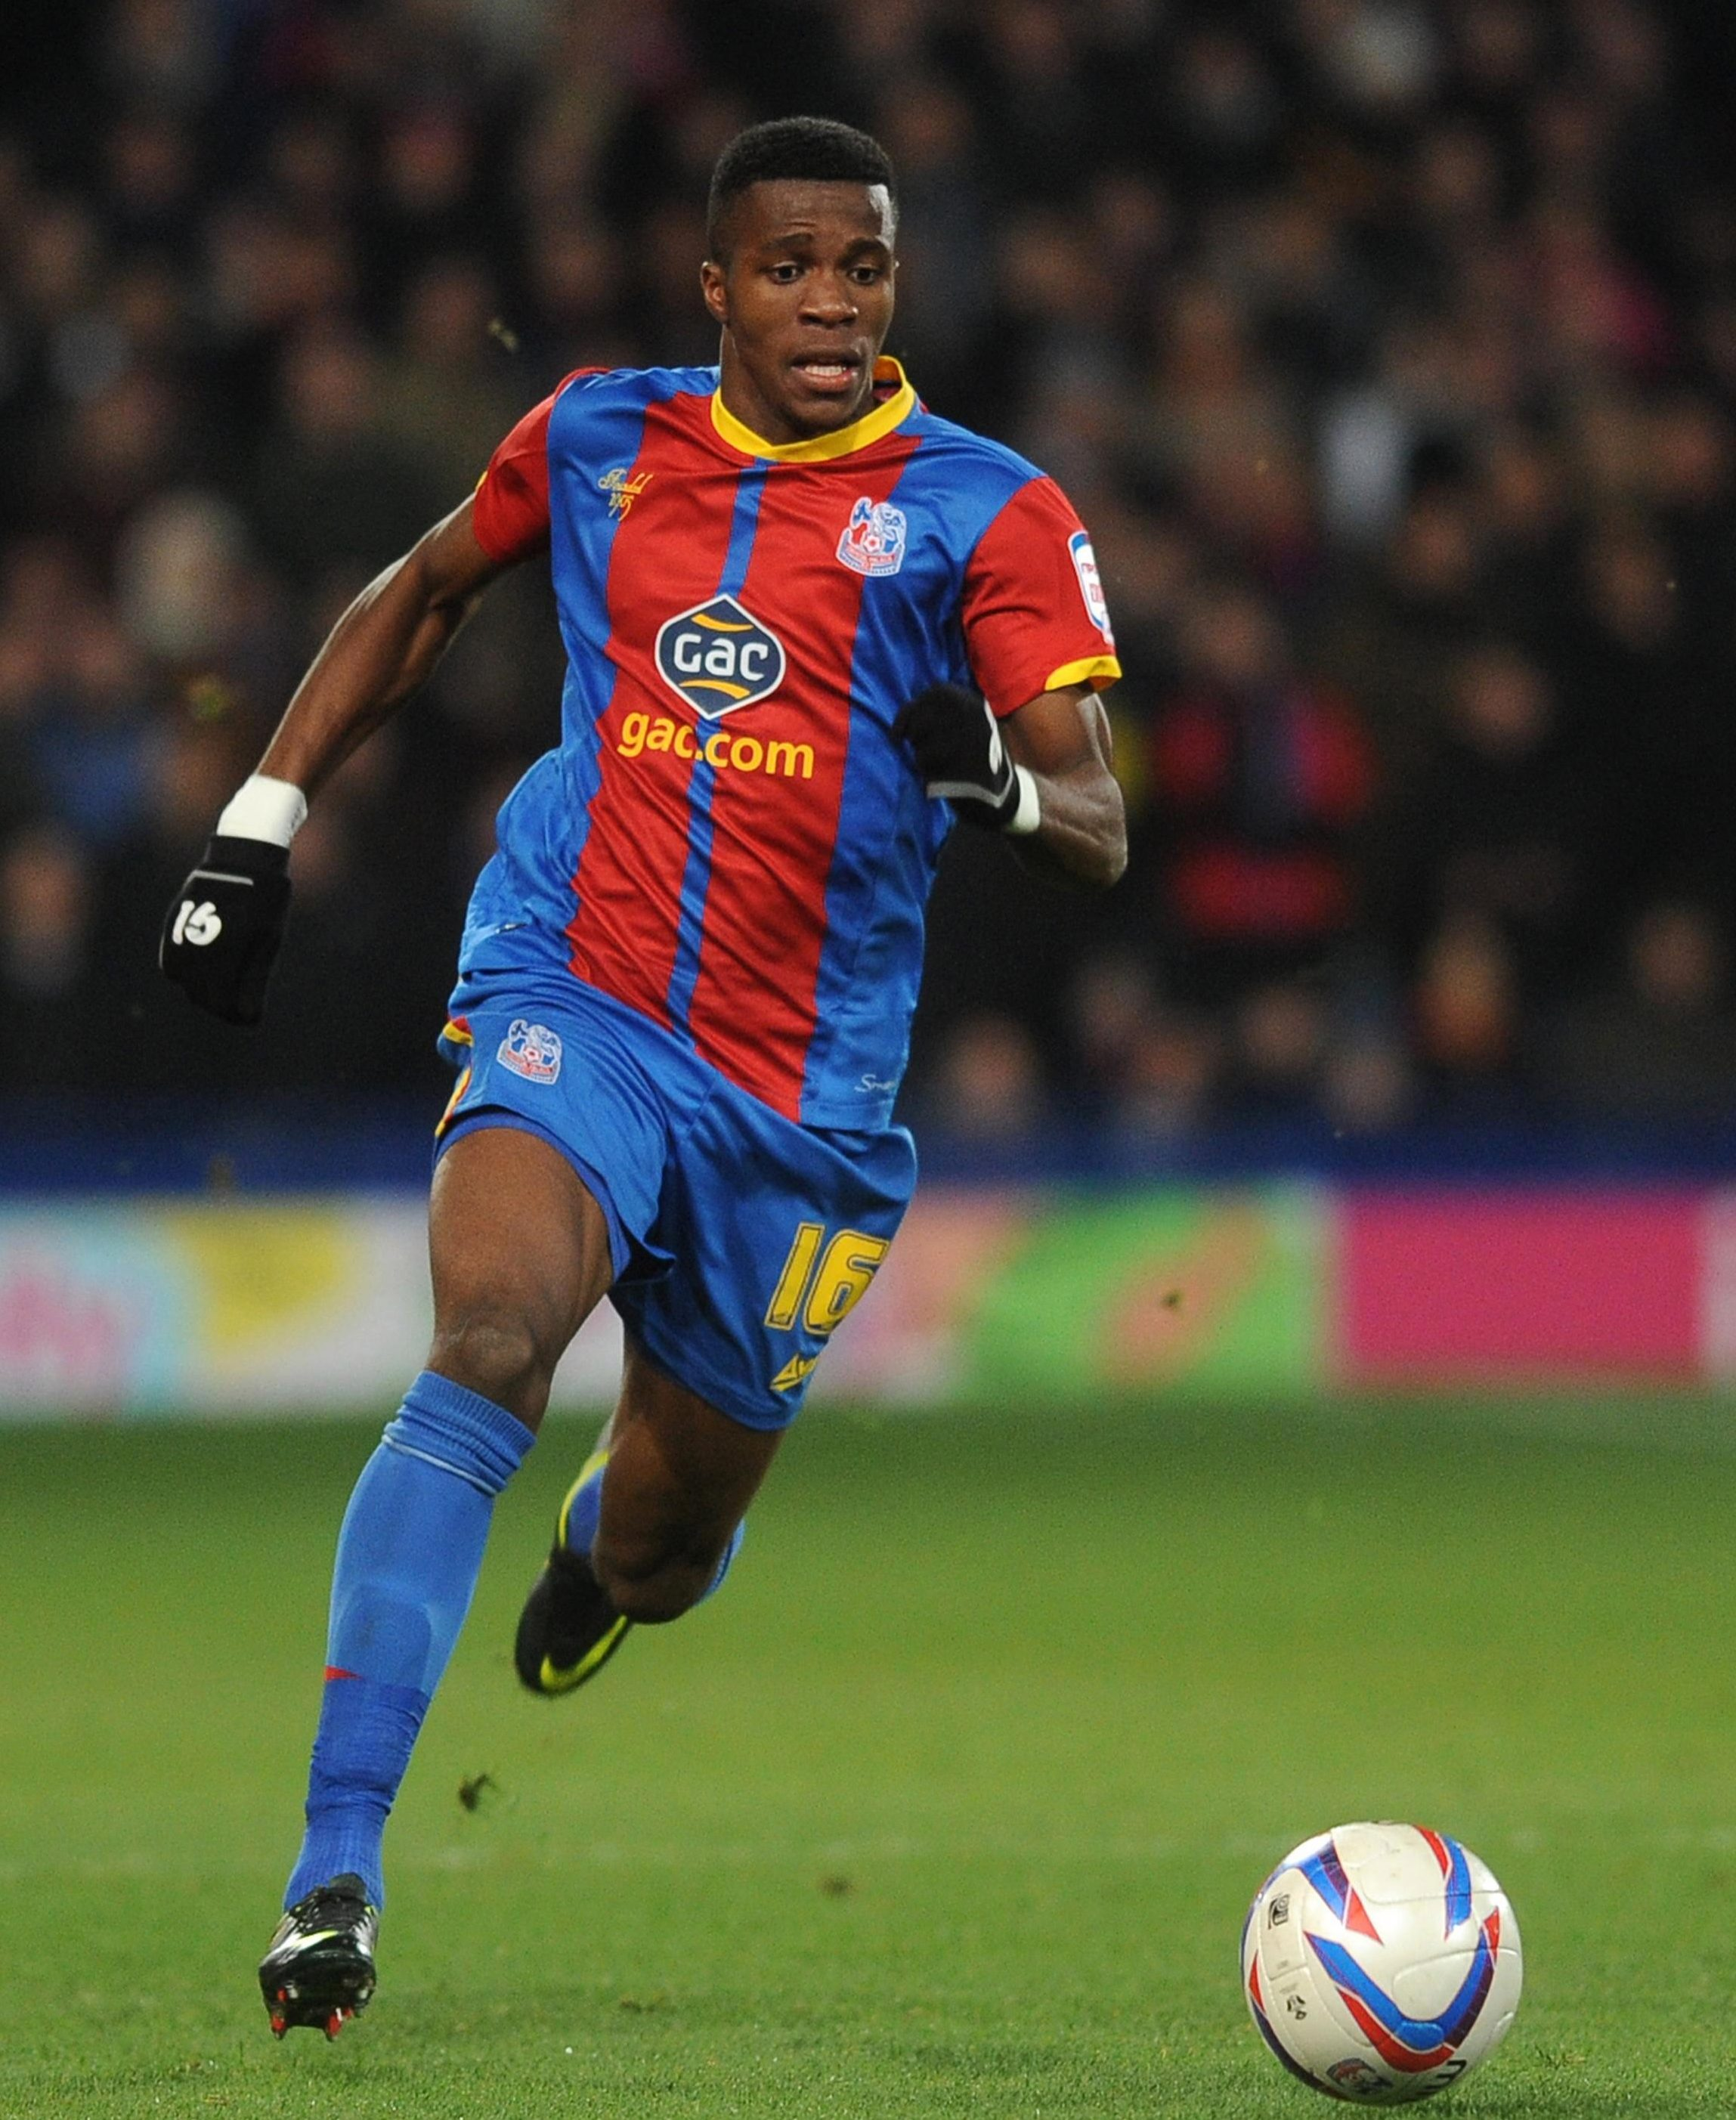 Championship defenders were like practice dummies for Wilf